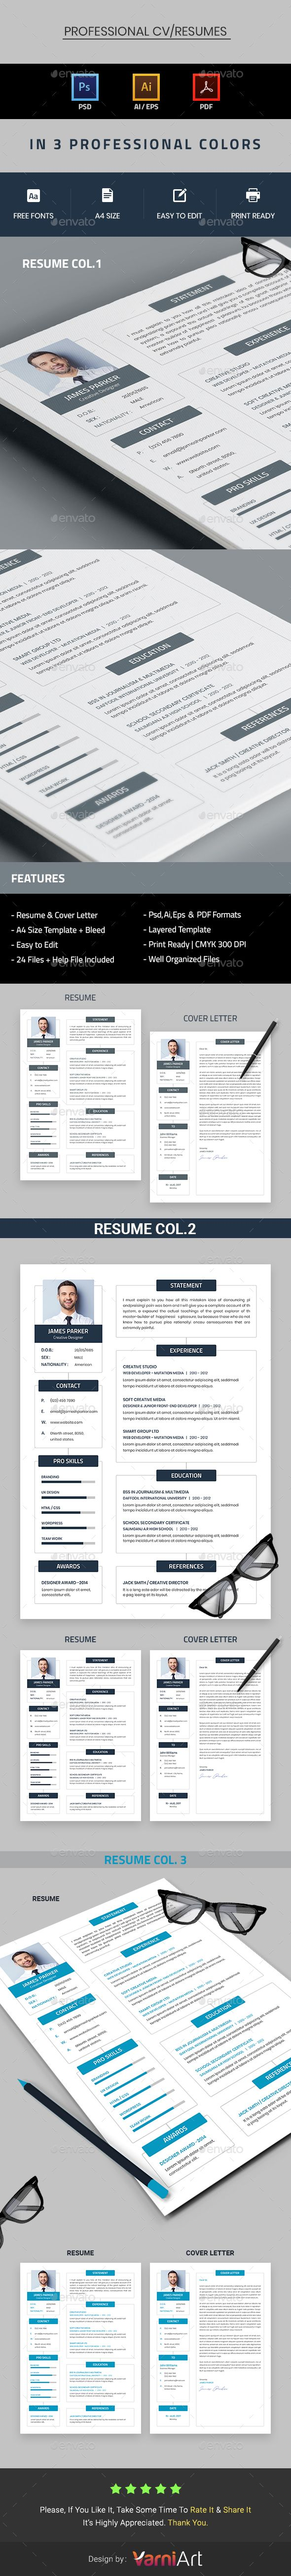 Resume Template Resume cover letters